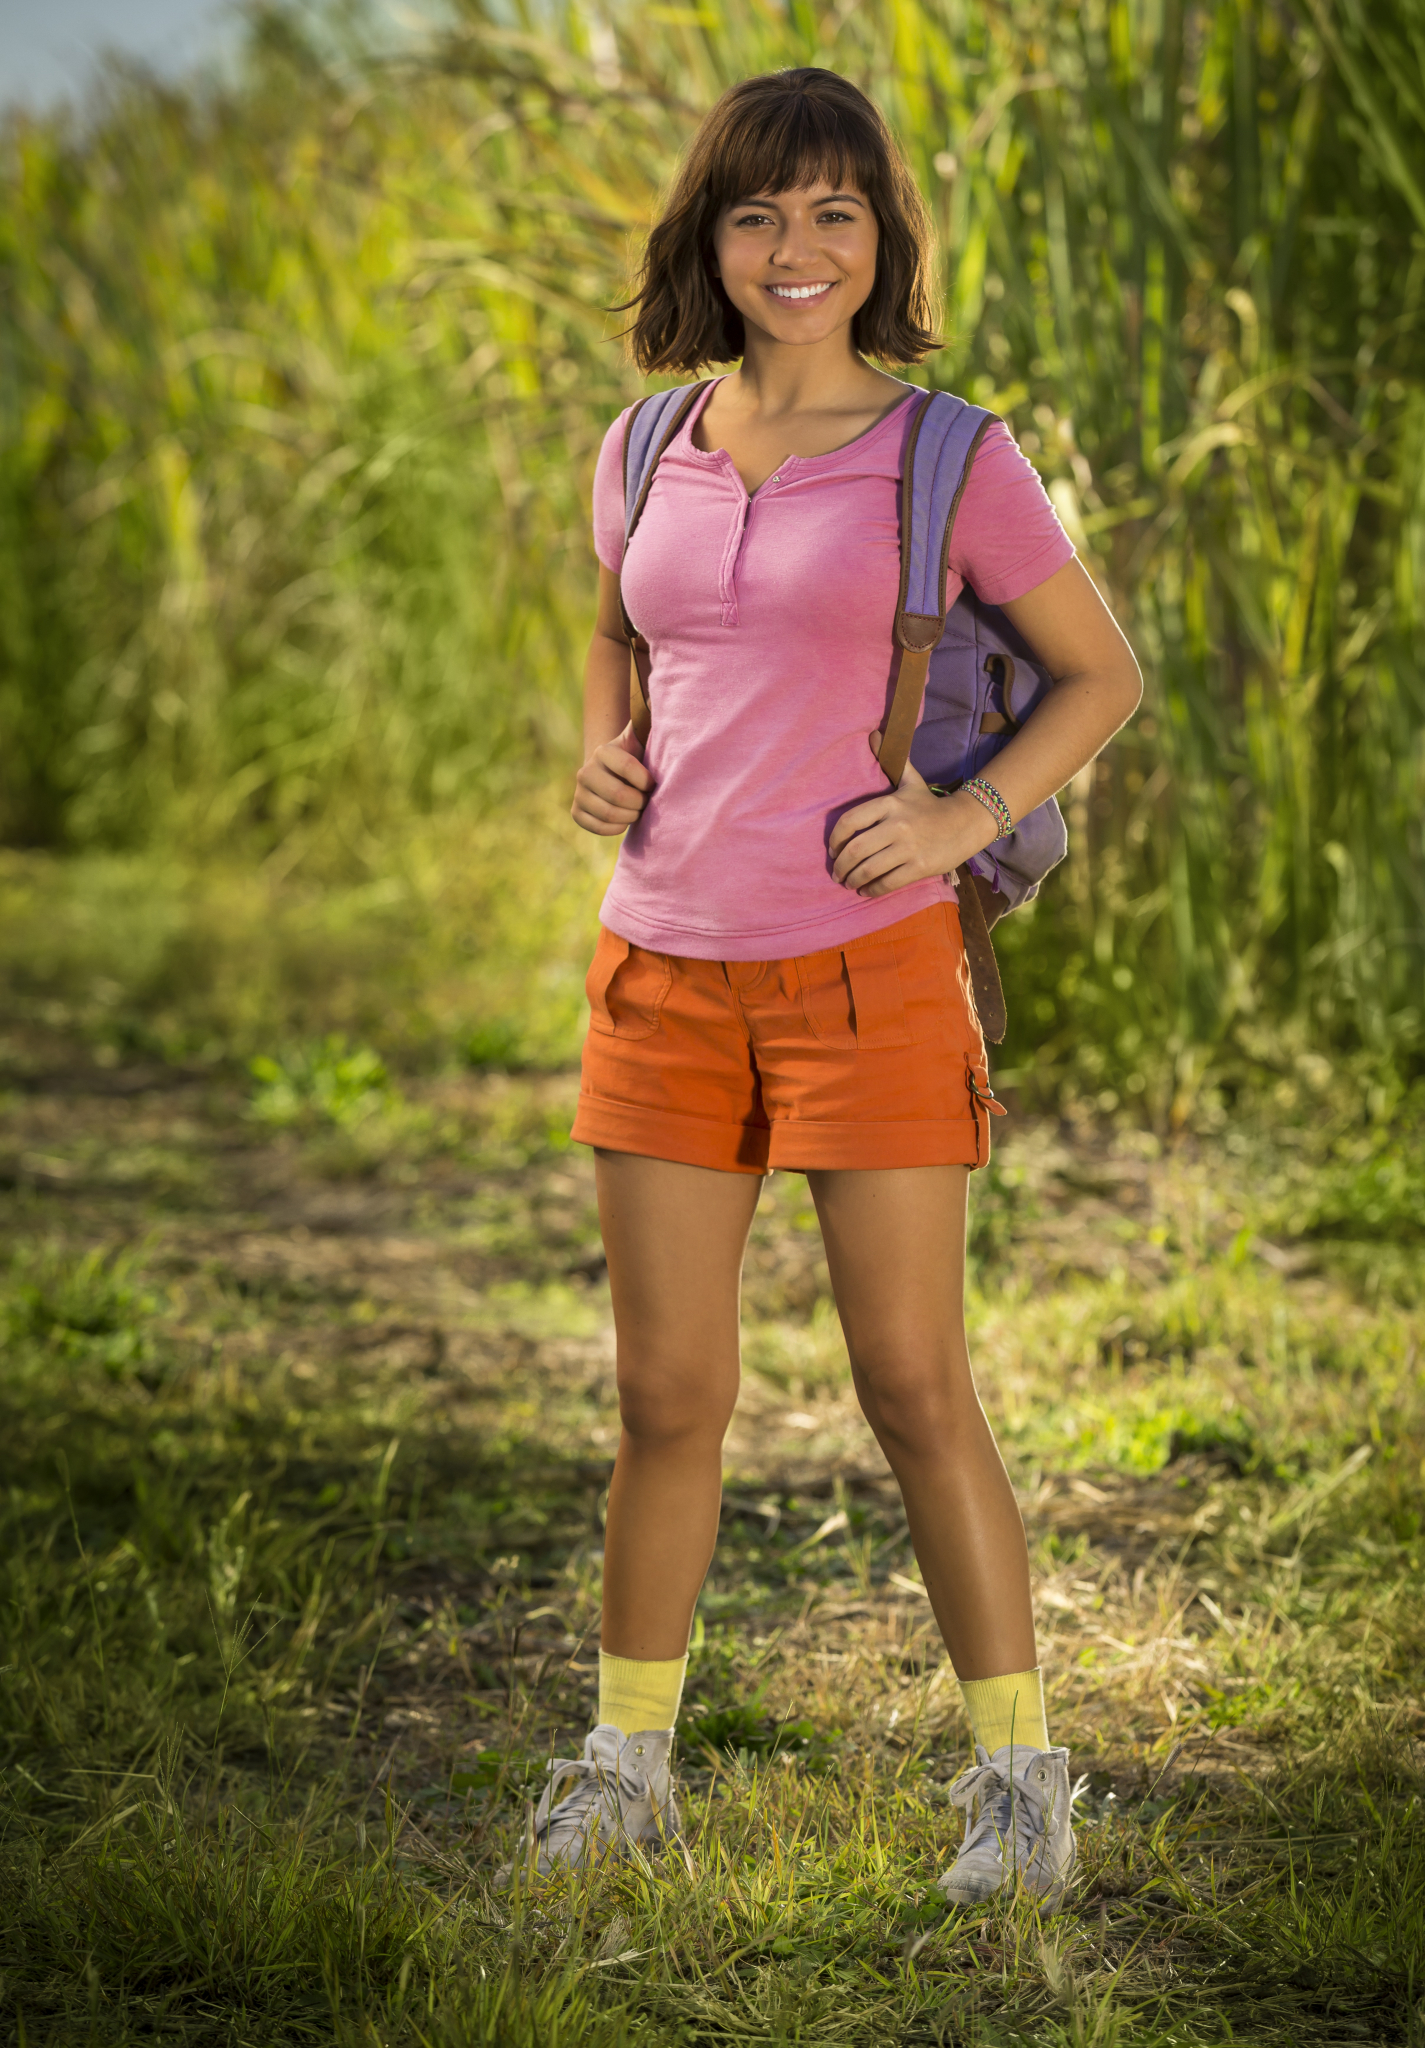 Meet the new Dora the Explorer, teen star Isabela Moner